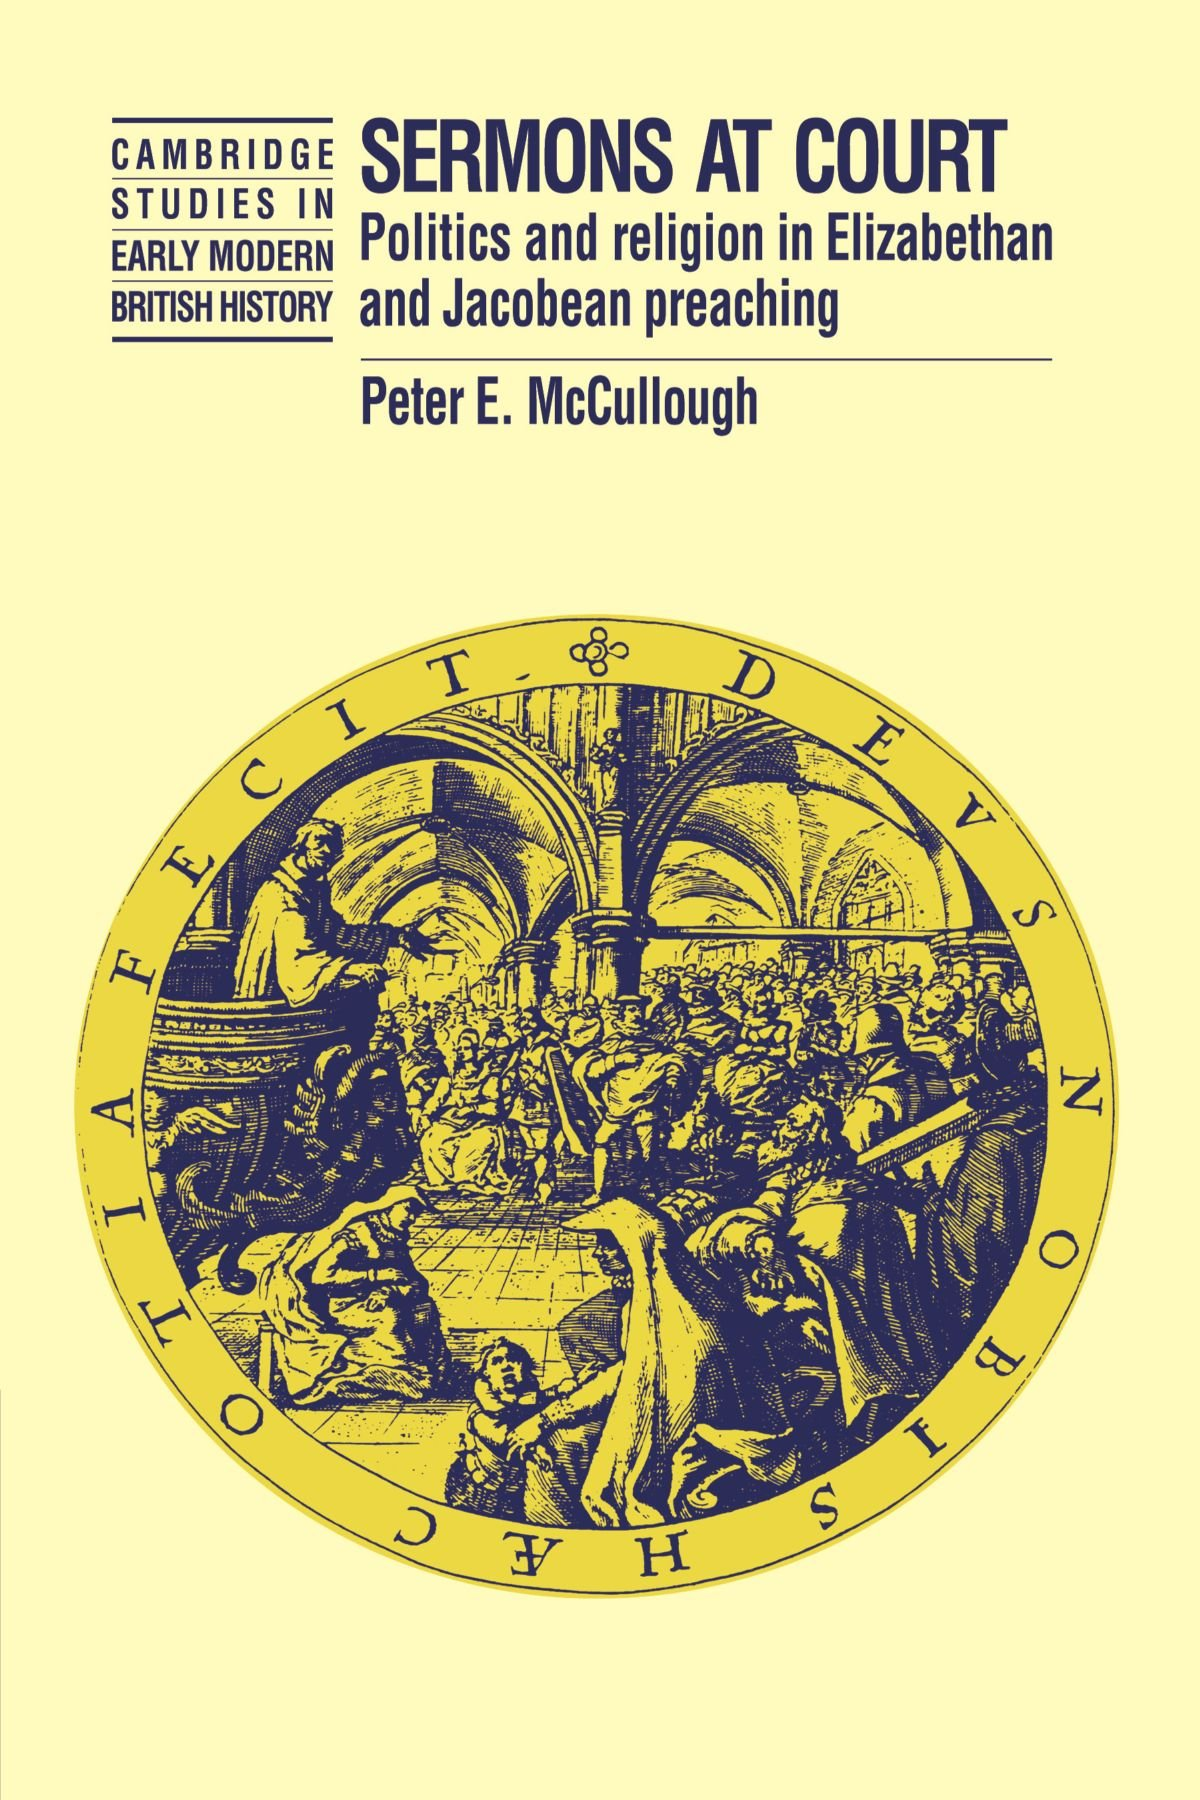 Download Sermons at Court: Politics and Religion in Elizabethan and Jacobean Preaching (Cambridge Studies in Early Modern British History) ebook